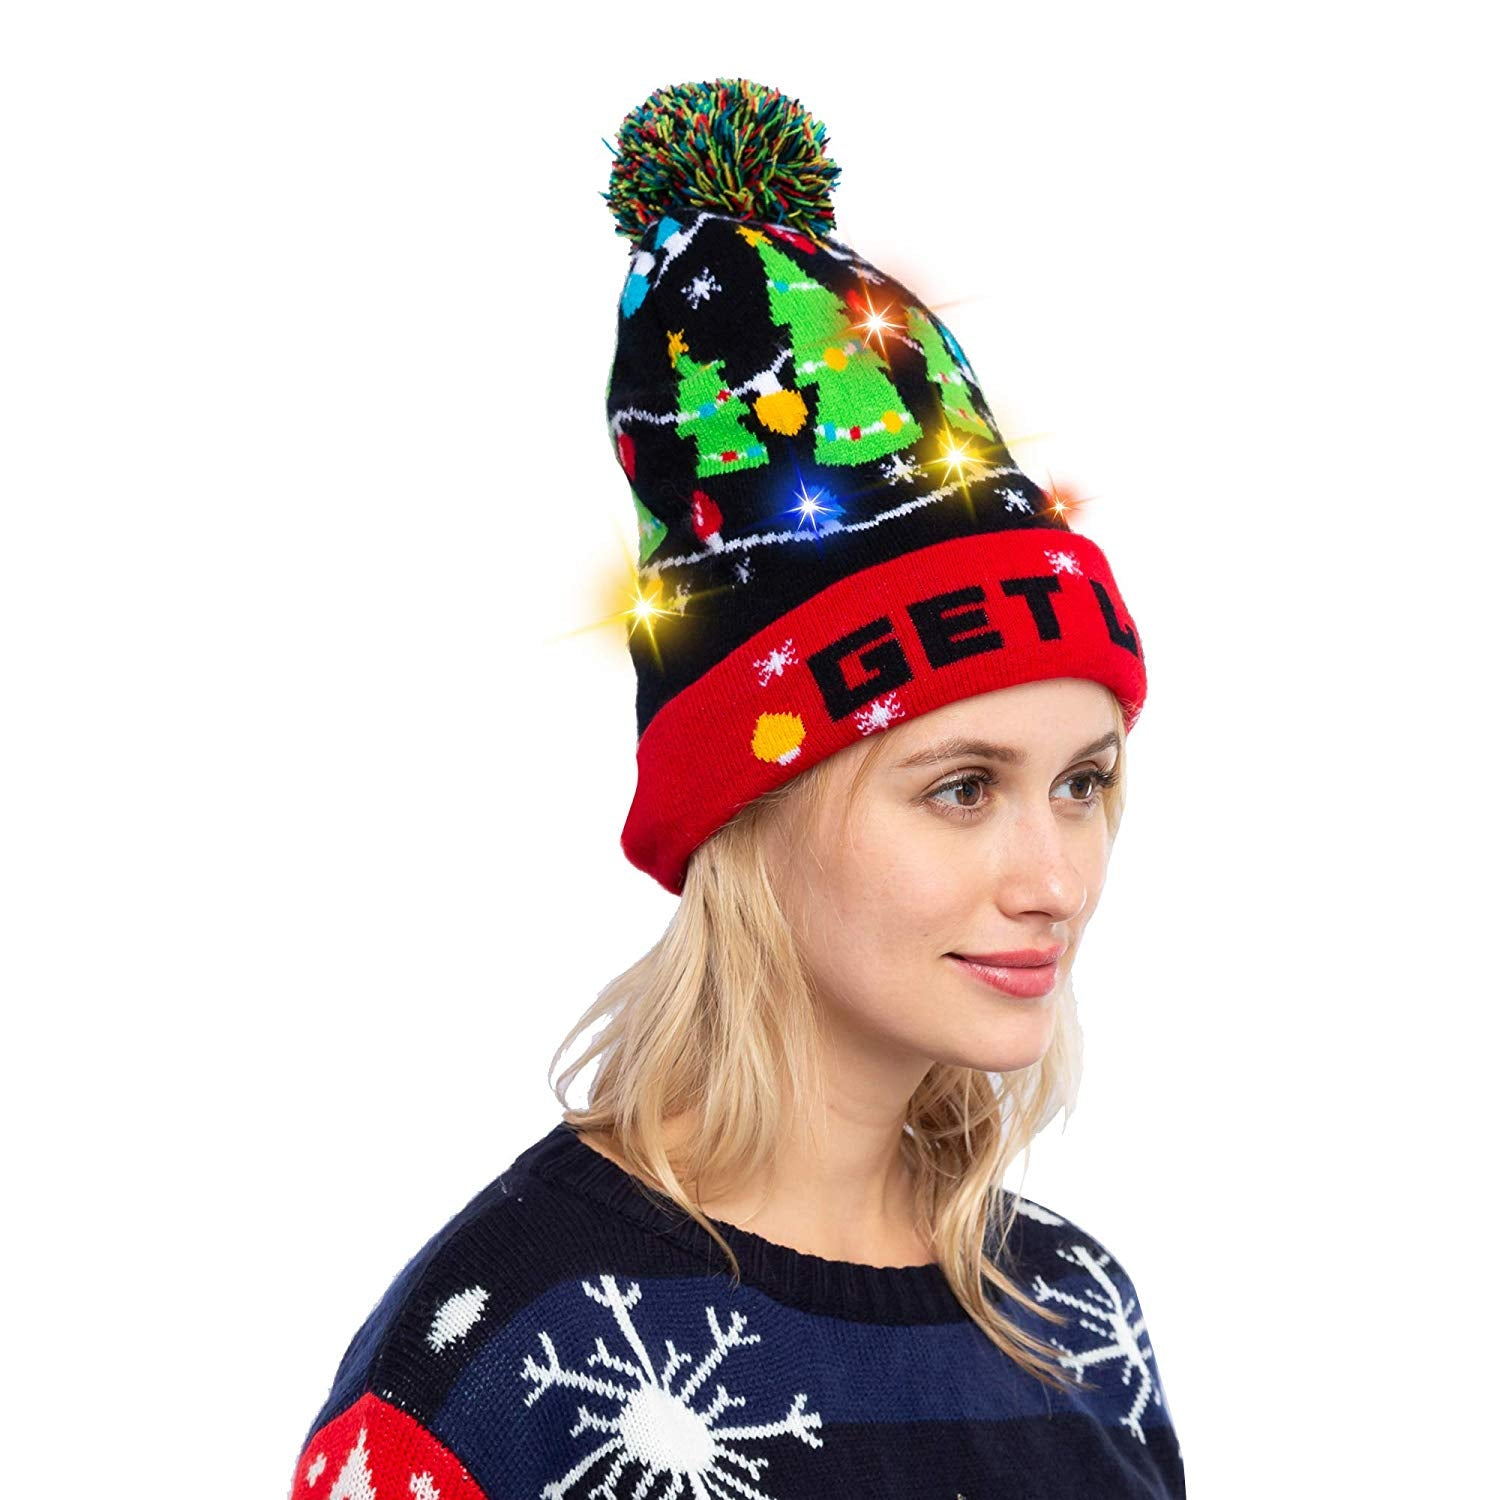 Christmas Tree Knitted Lit-up Beanie